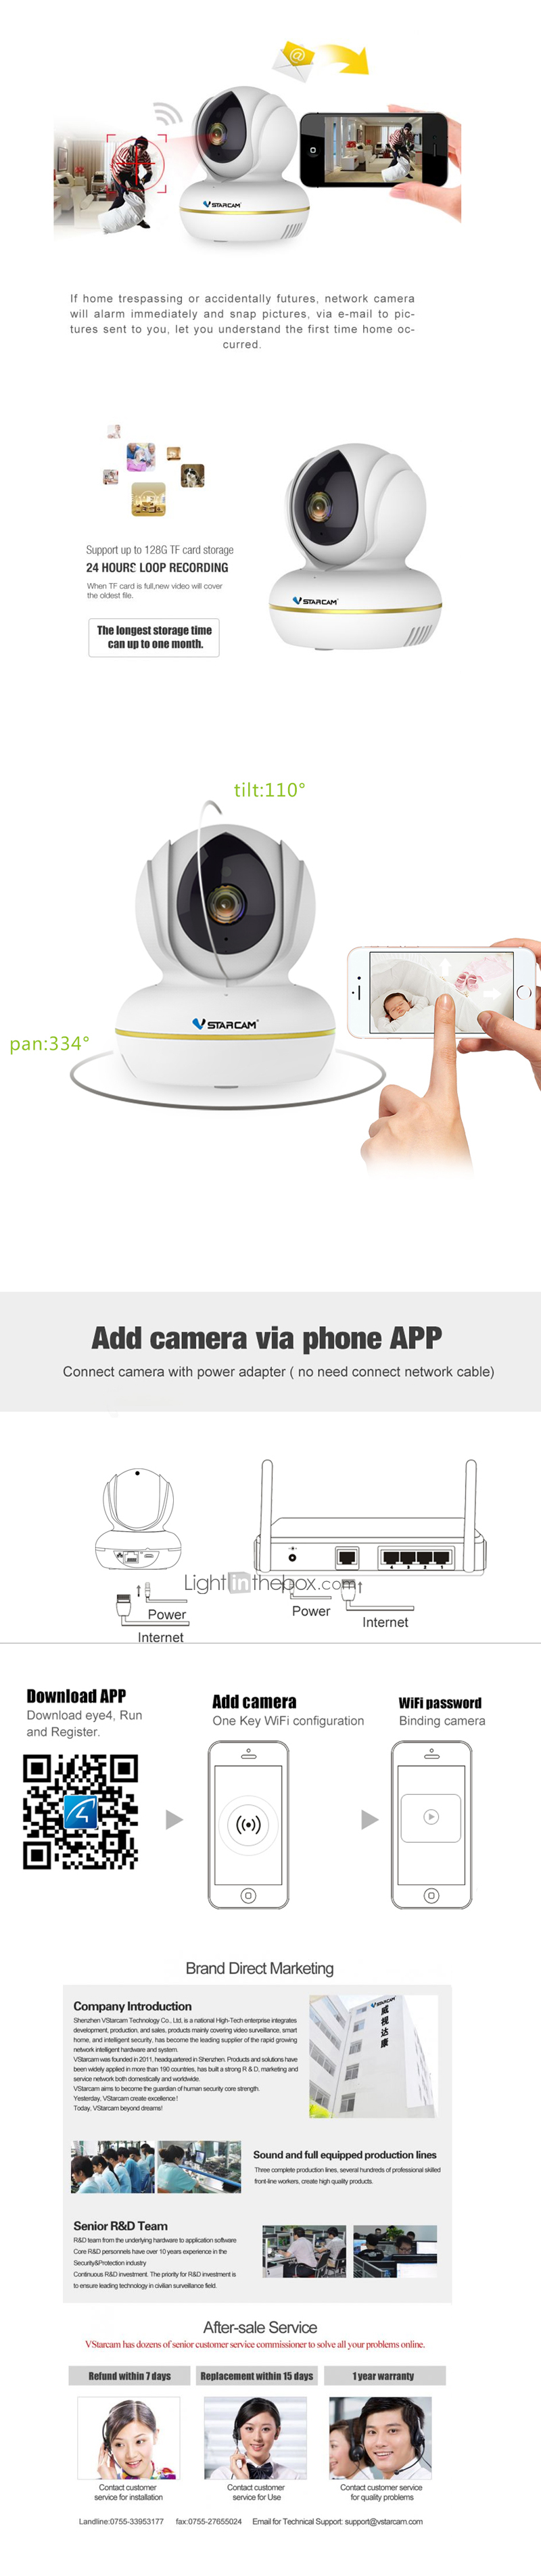 C22S 2 mp IP Camera Indoor Support 128 GB / PTZ / CMOS / Wireless / Motion  Detection / Remote Access